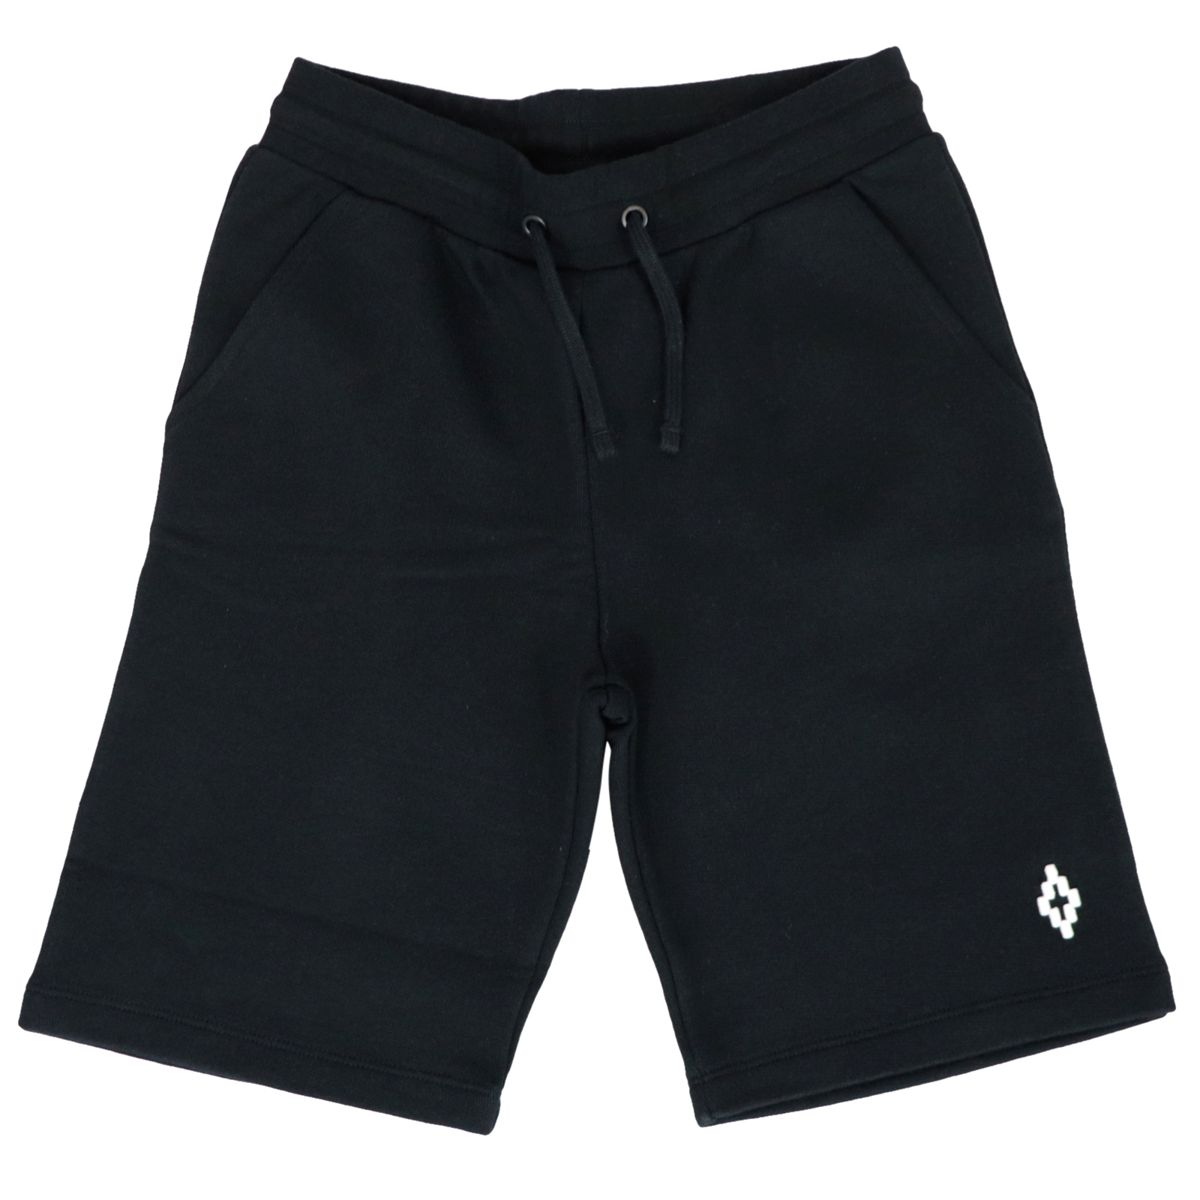 Cotton fleece shorts with contrasting logo Black MARCELO BURLON